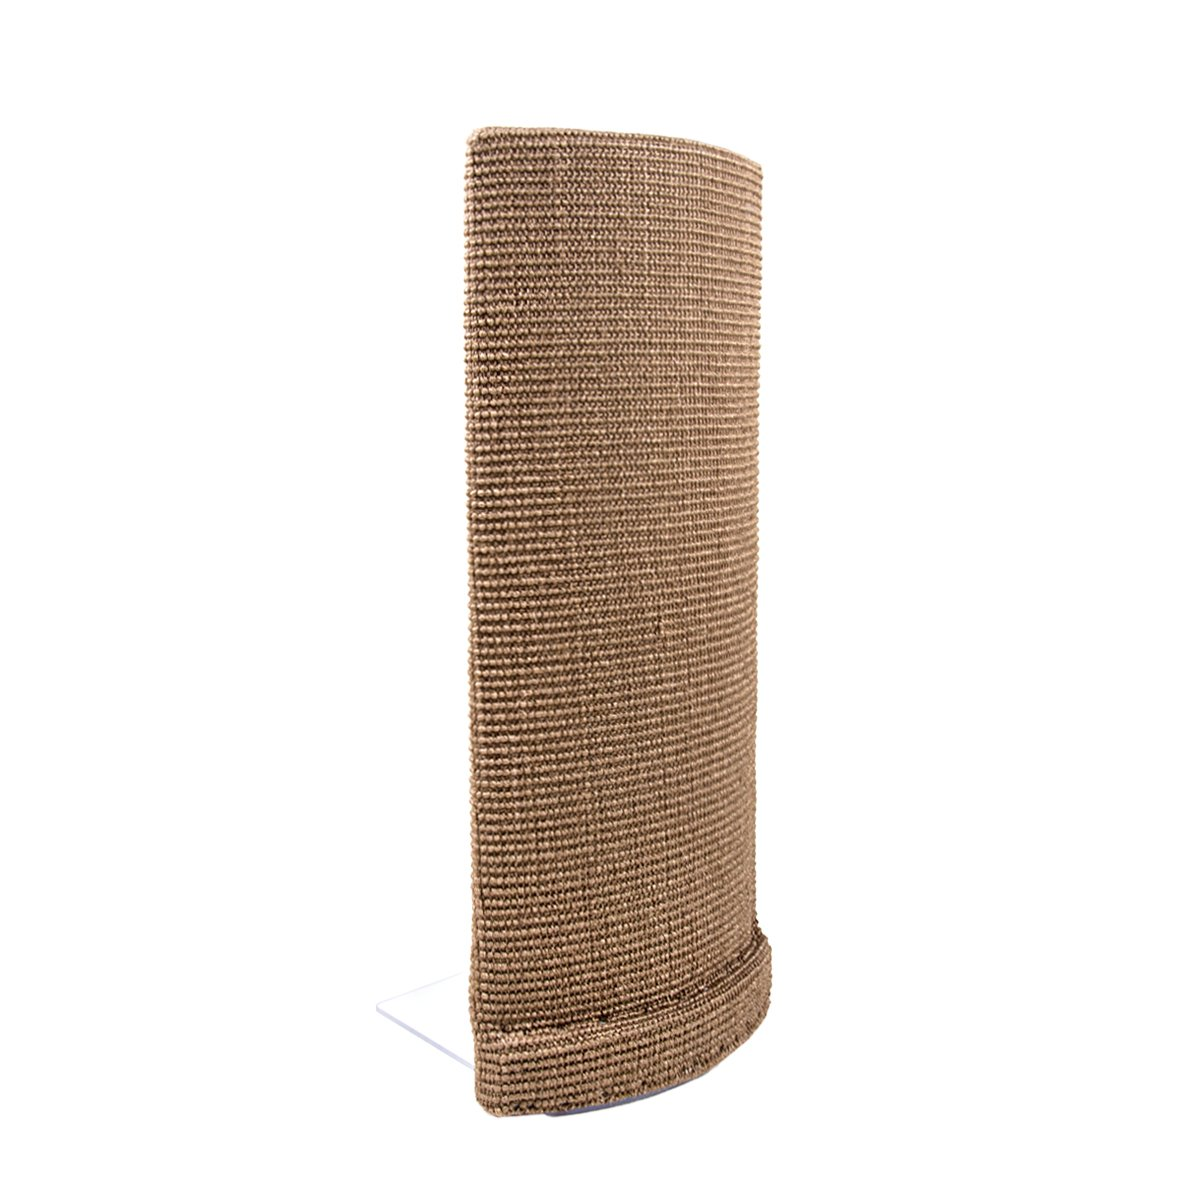 'Sofa-Scratcher' Cat Scratching Post & Couch-Corner / Furniture Protector CatTrees